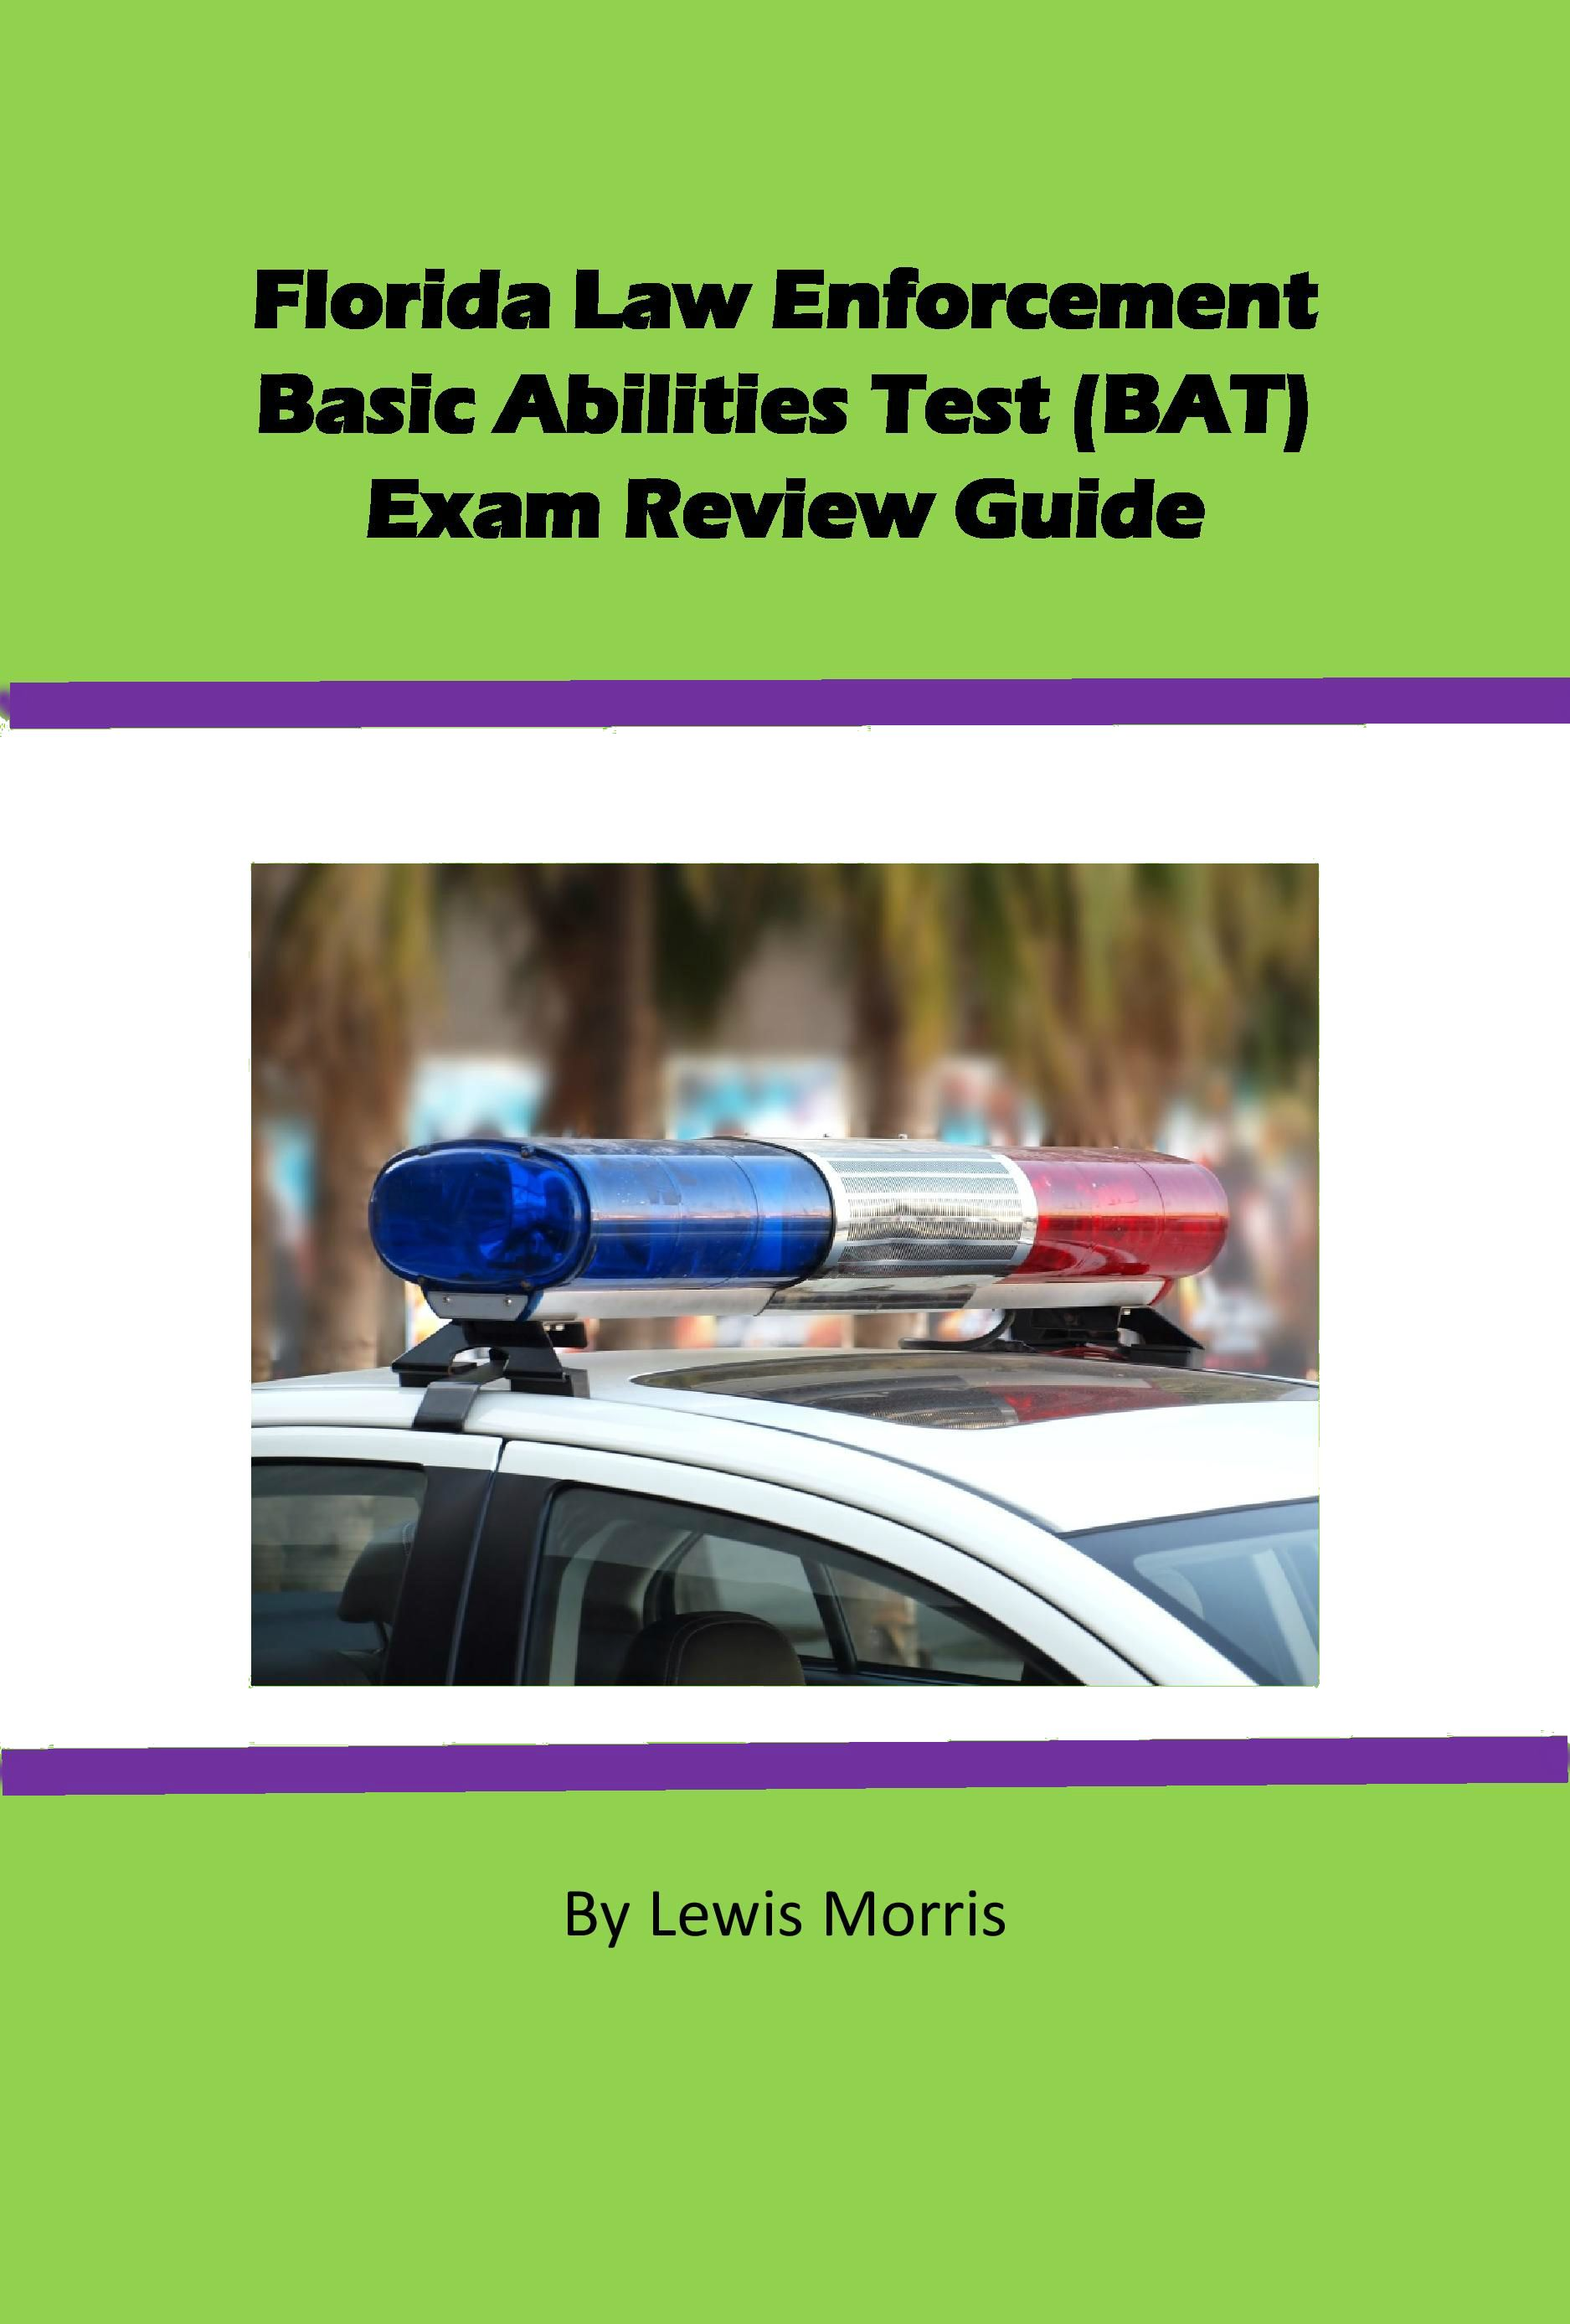 Florida Law Enforcement Exam (BAT) Exam Review Materials